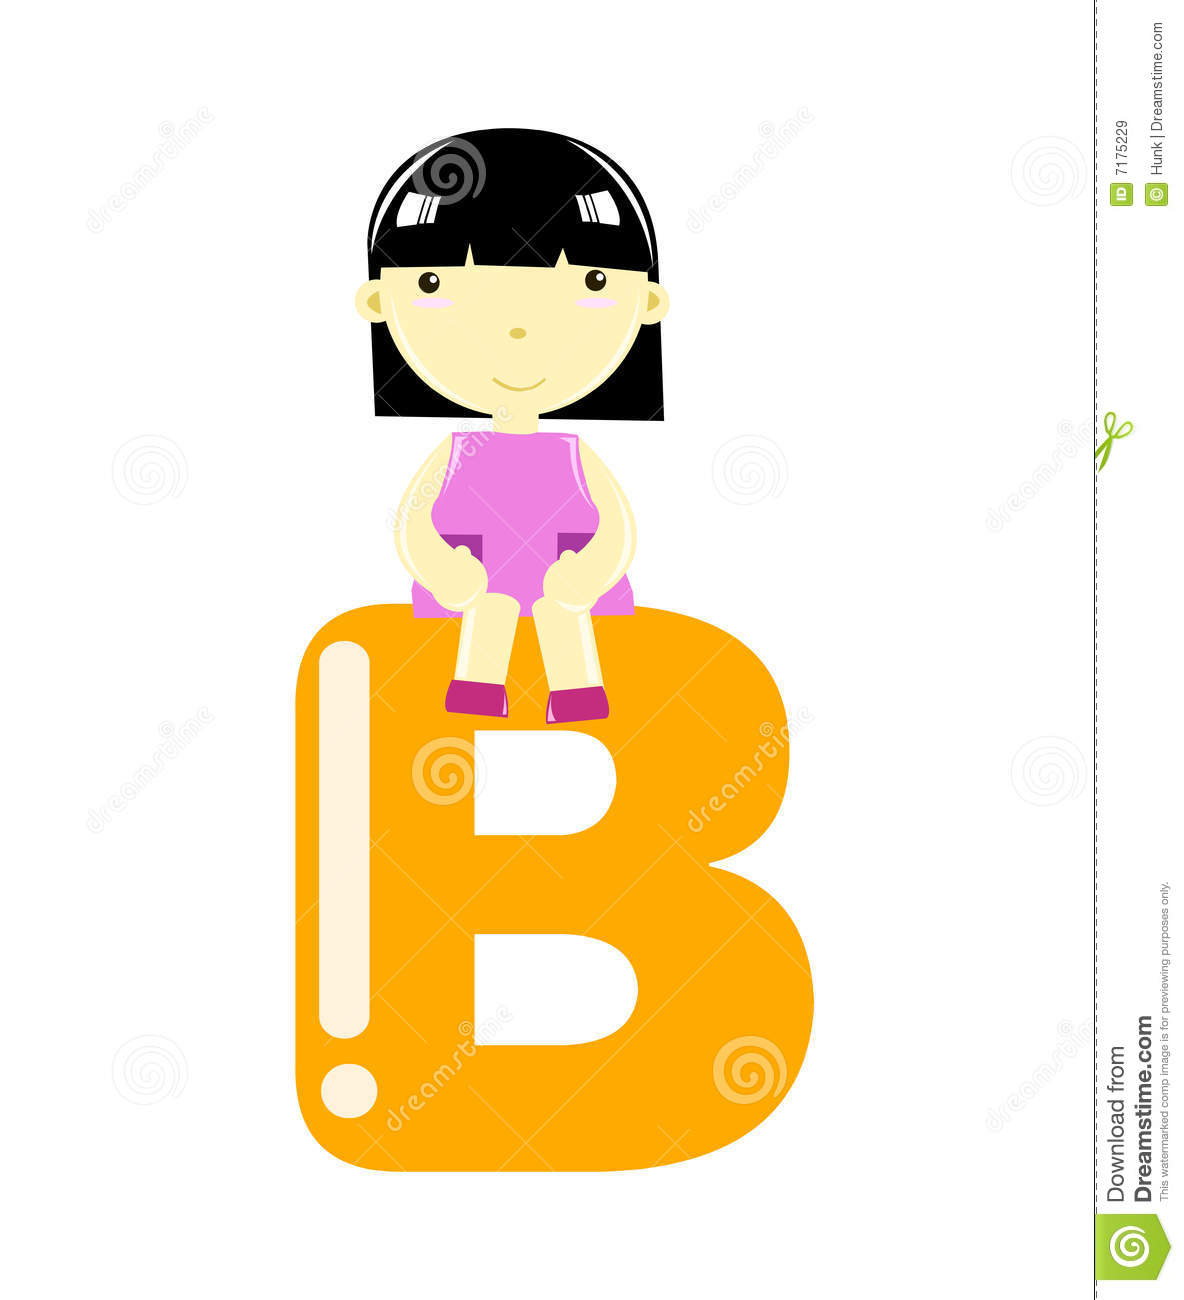 alphabet letter b royalty free stock images image 7175229